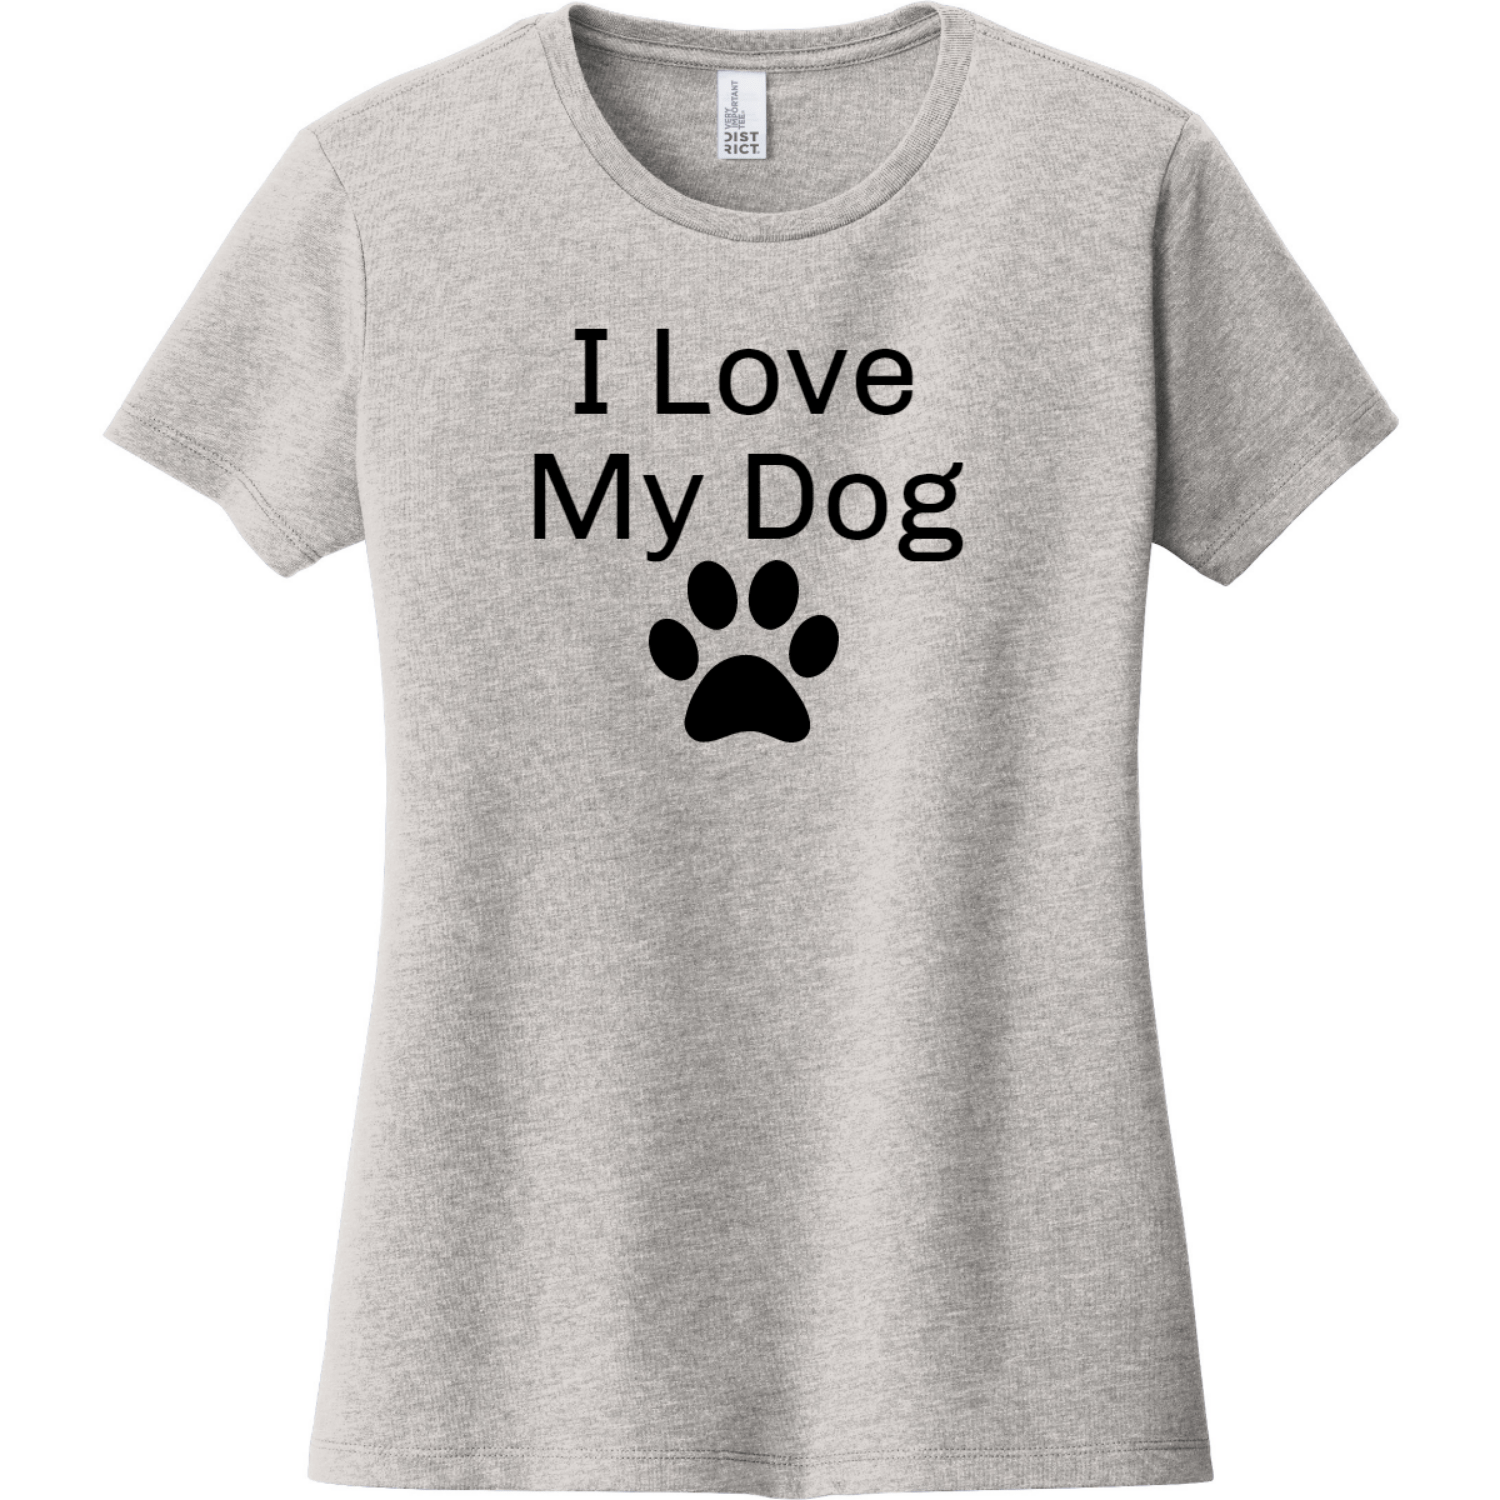 I Love My Dog Women's T-Shirt Light Heather Gray District Women's Very Important Tee DT6002